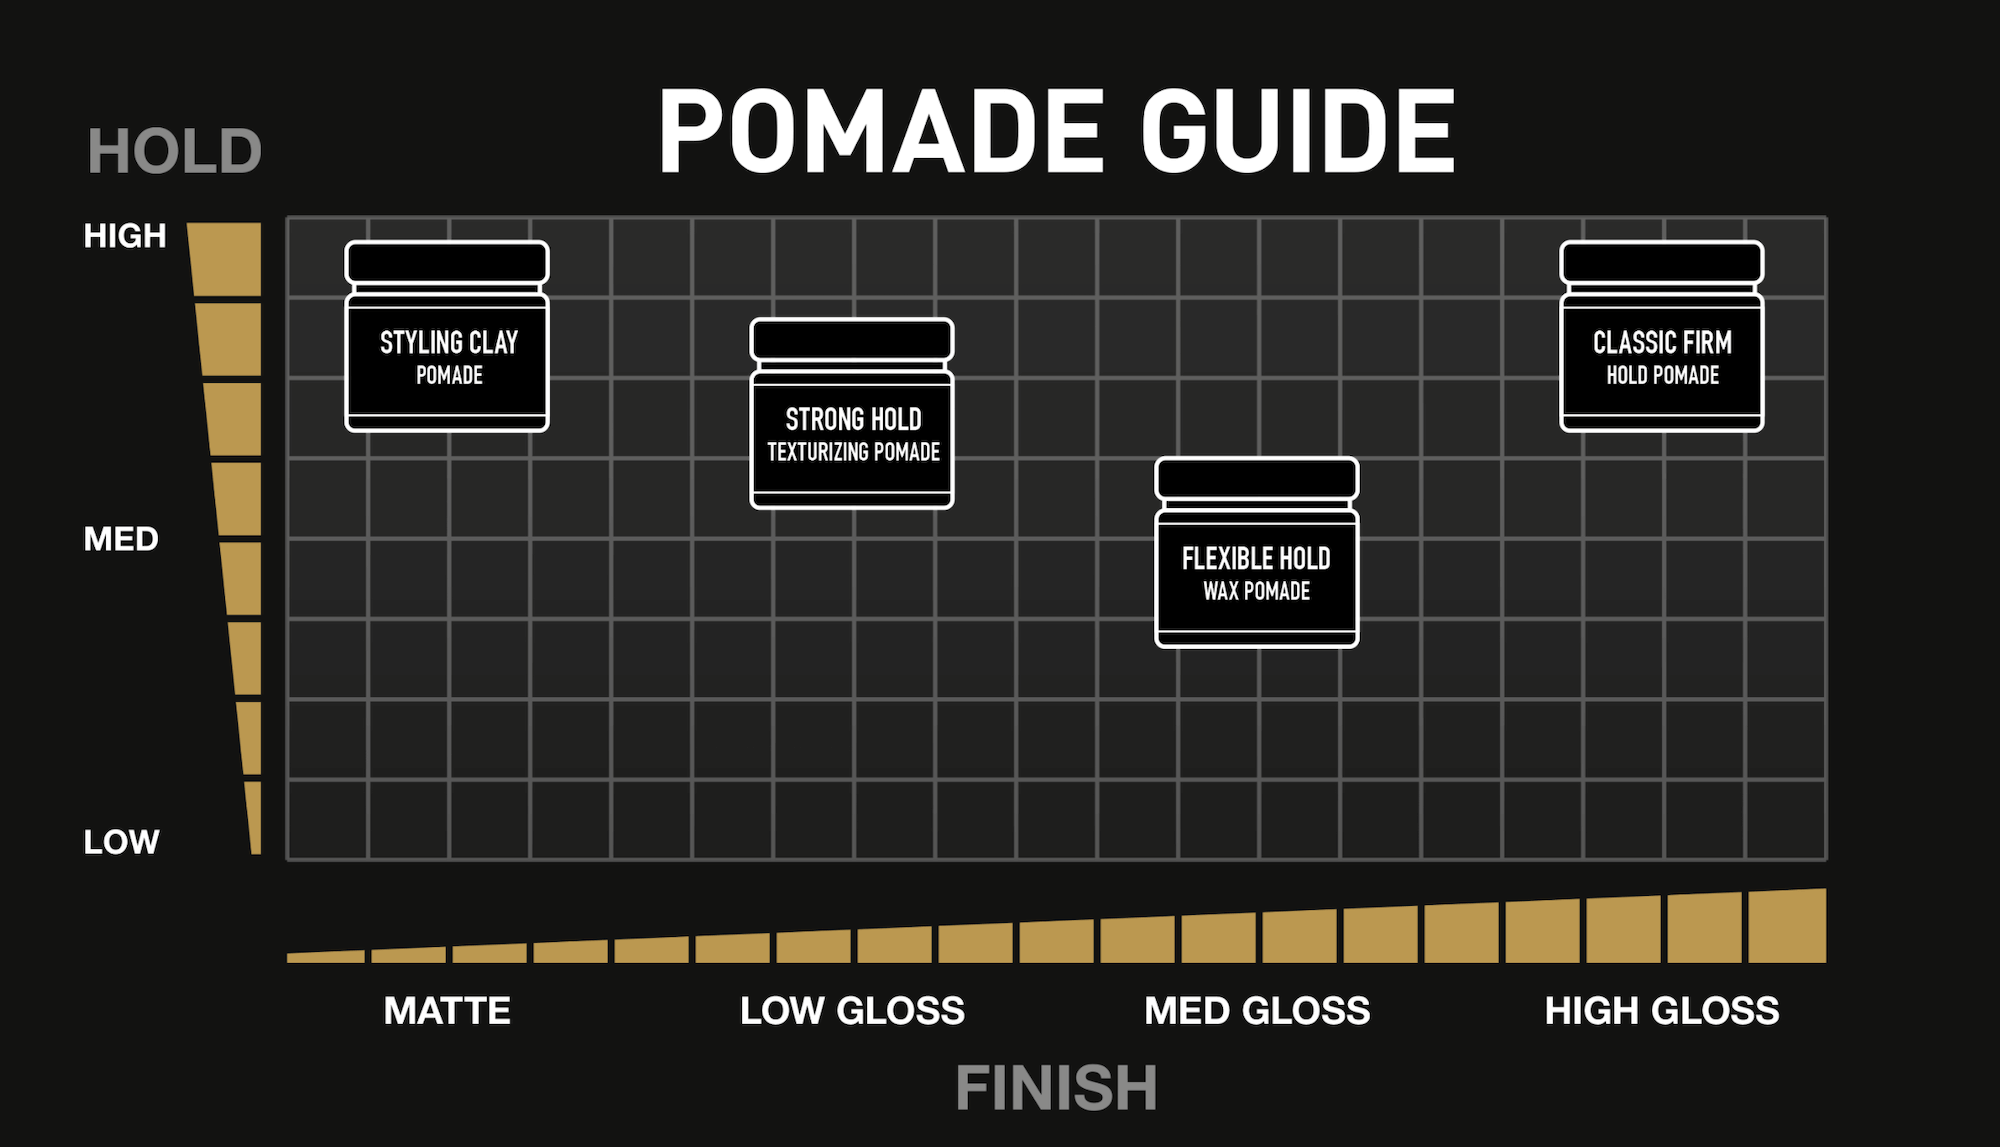 Guide to different kinds of pomade